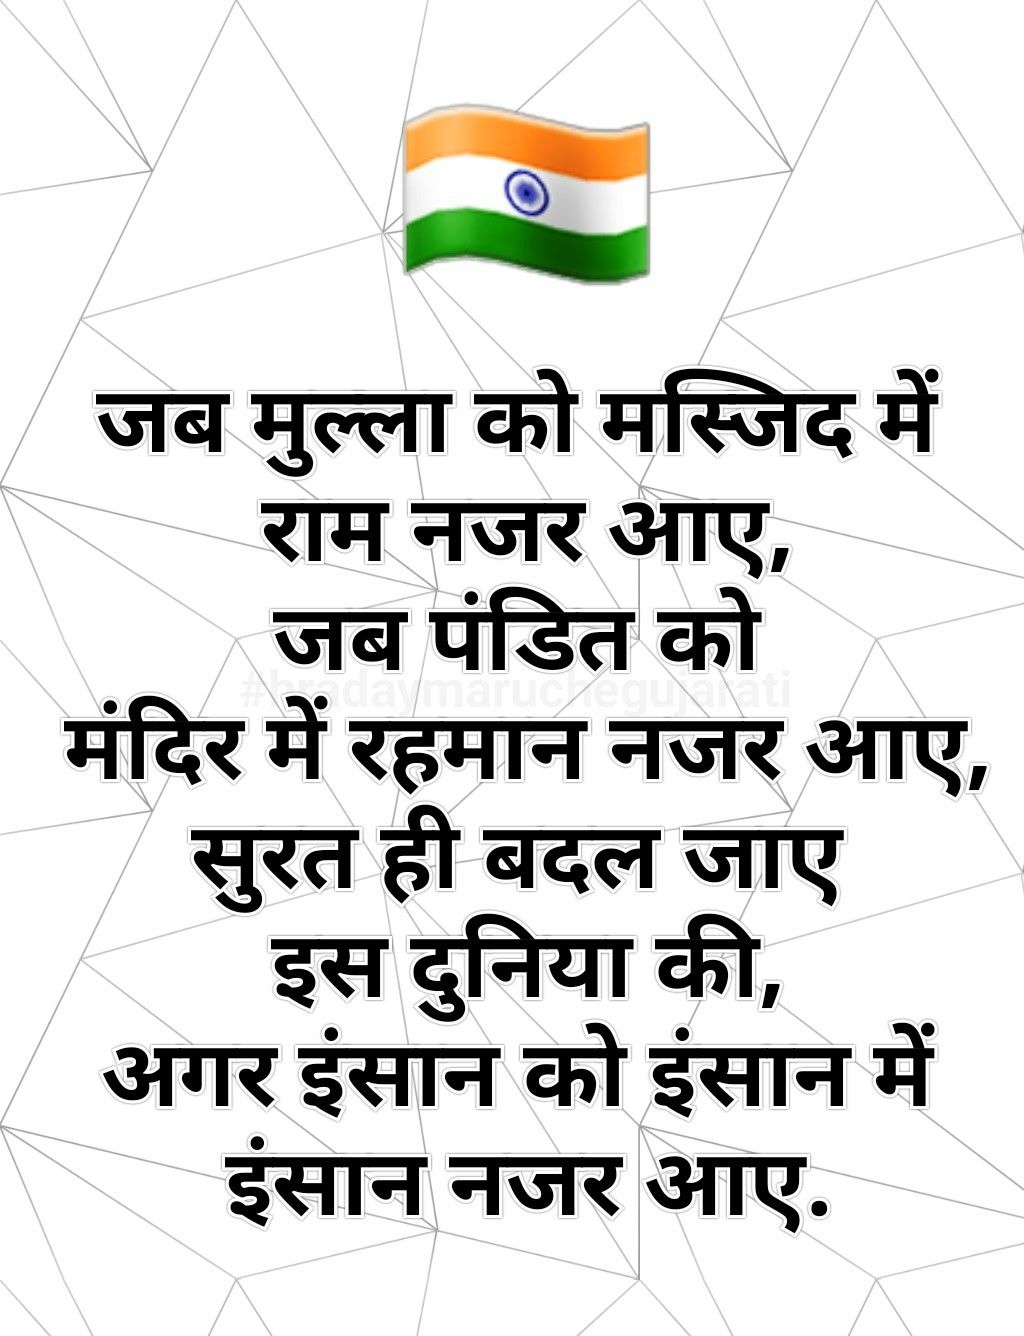 Hindi Quote Quotes On Republic Day Patriotic Quotes Independence Day Quotes